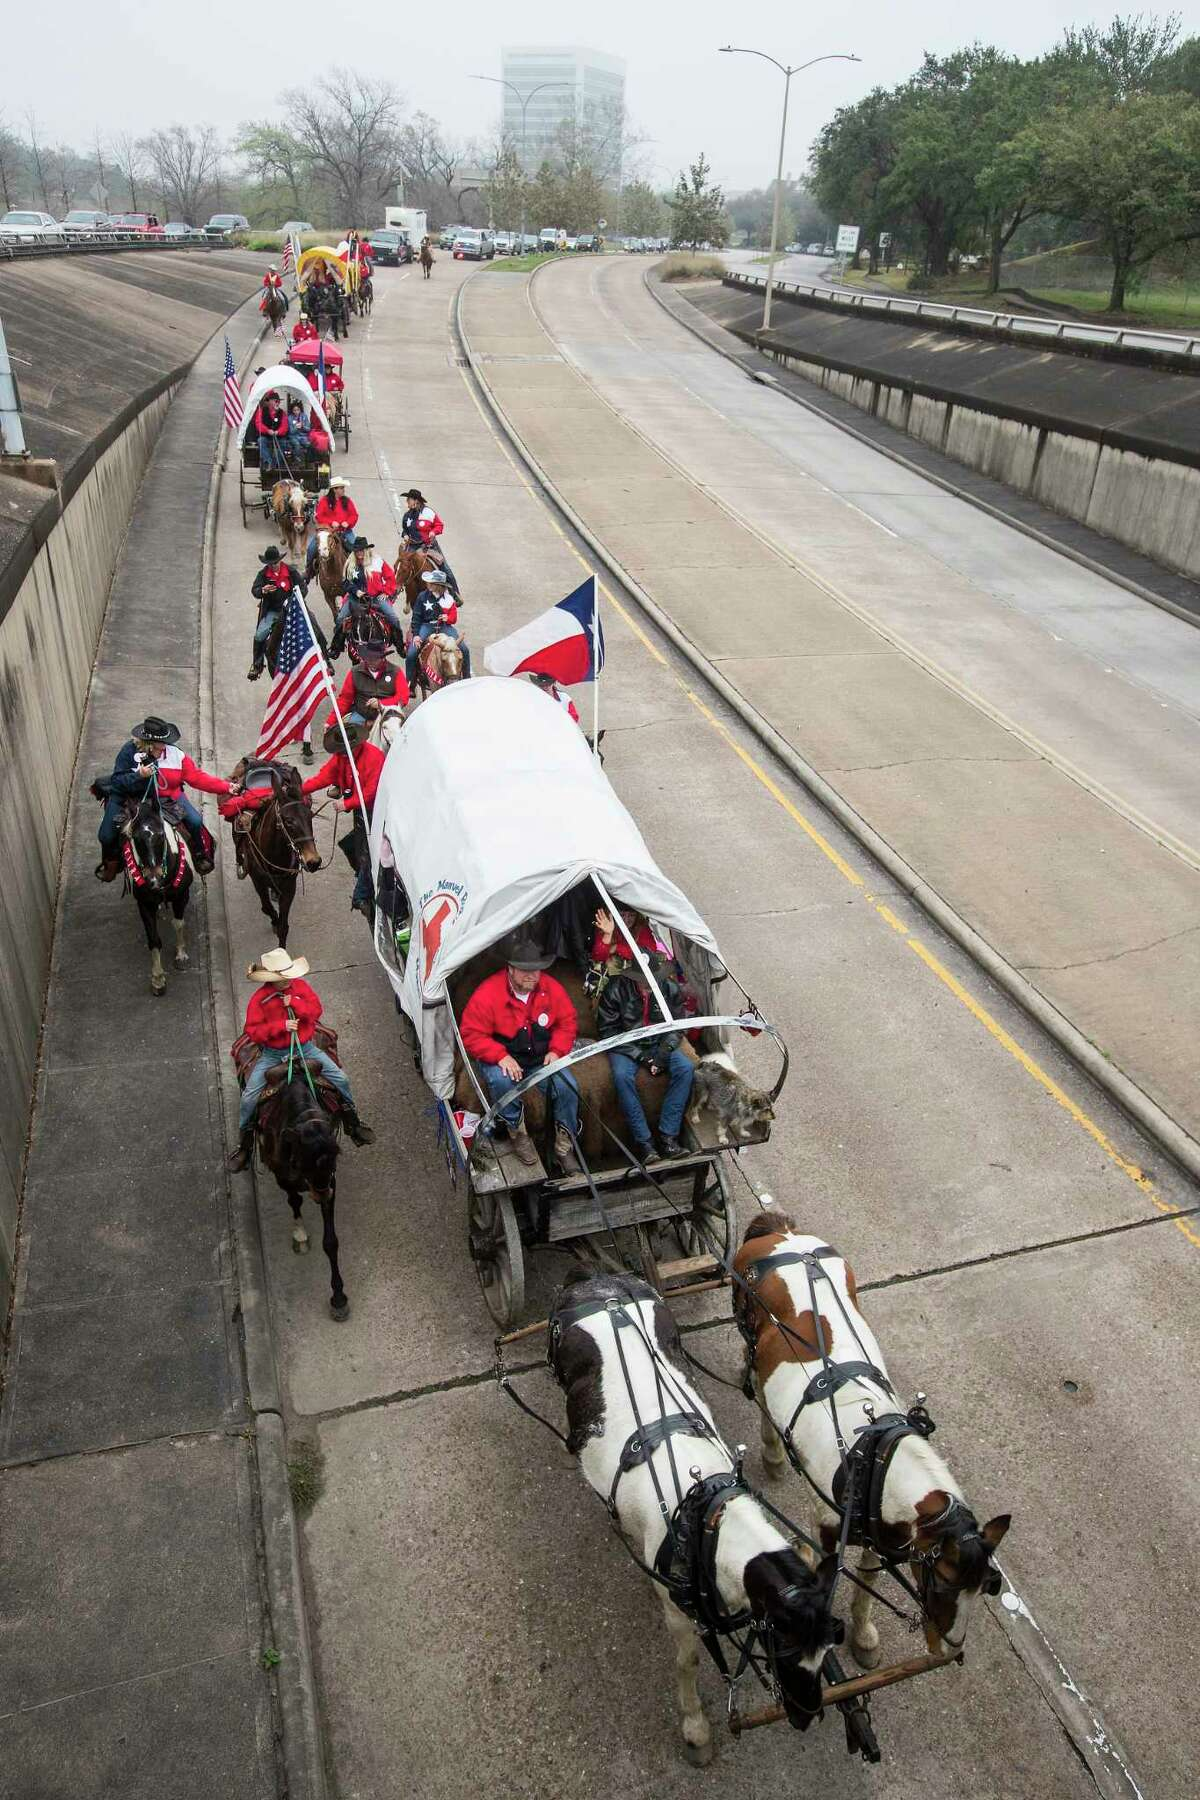 For many Texans, the sight of hundreds of horseback riders and covered wagons making their way down state highways into Houston is a heartfelt reminder that rodeo season has officially begun. Original caption: The Texas Independence Trail Ride travels along Allen Parkway as they make their way to Memorial Park to help kick off the annual Houston Livestock Show and Rodeo on Friday, Feb. 22, 2019, in Houston.